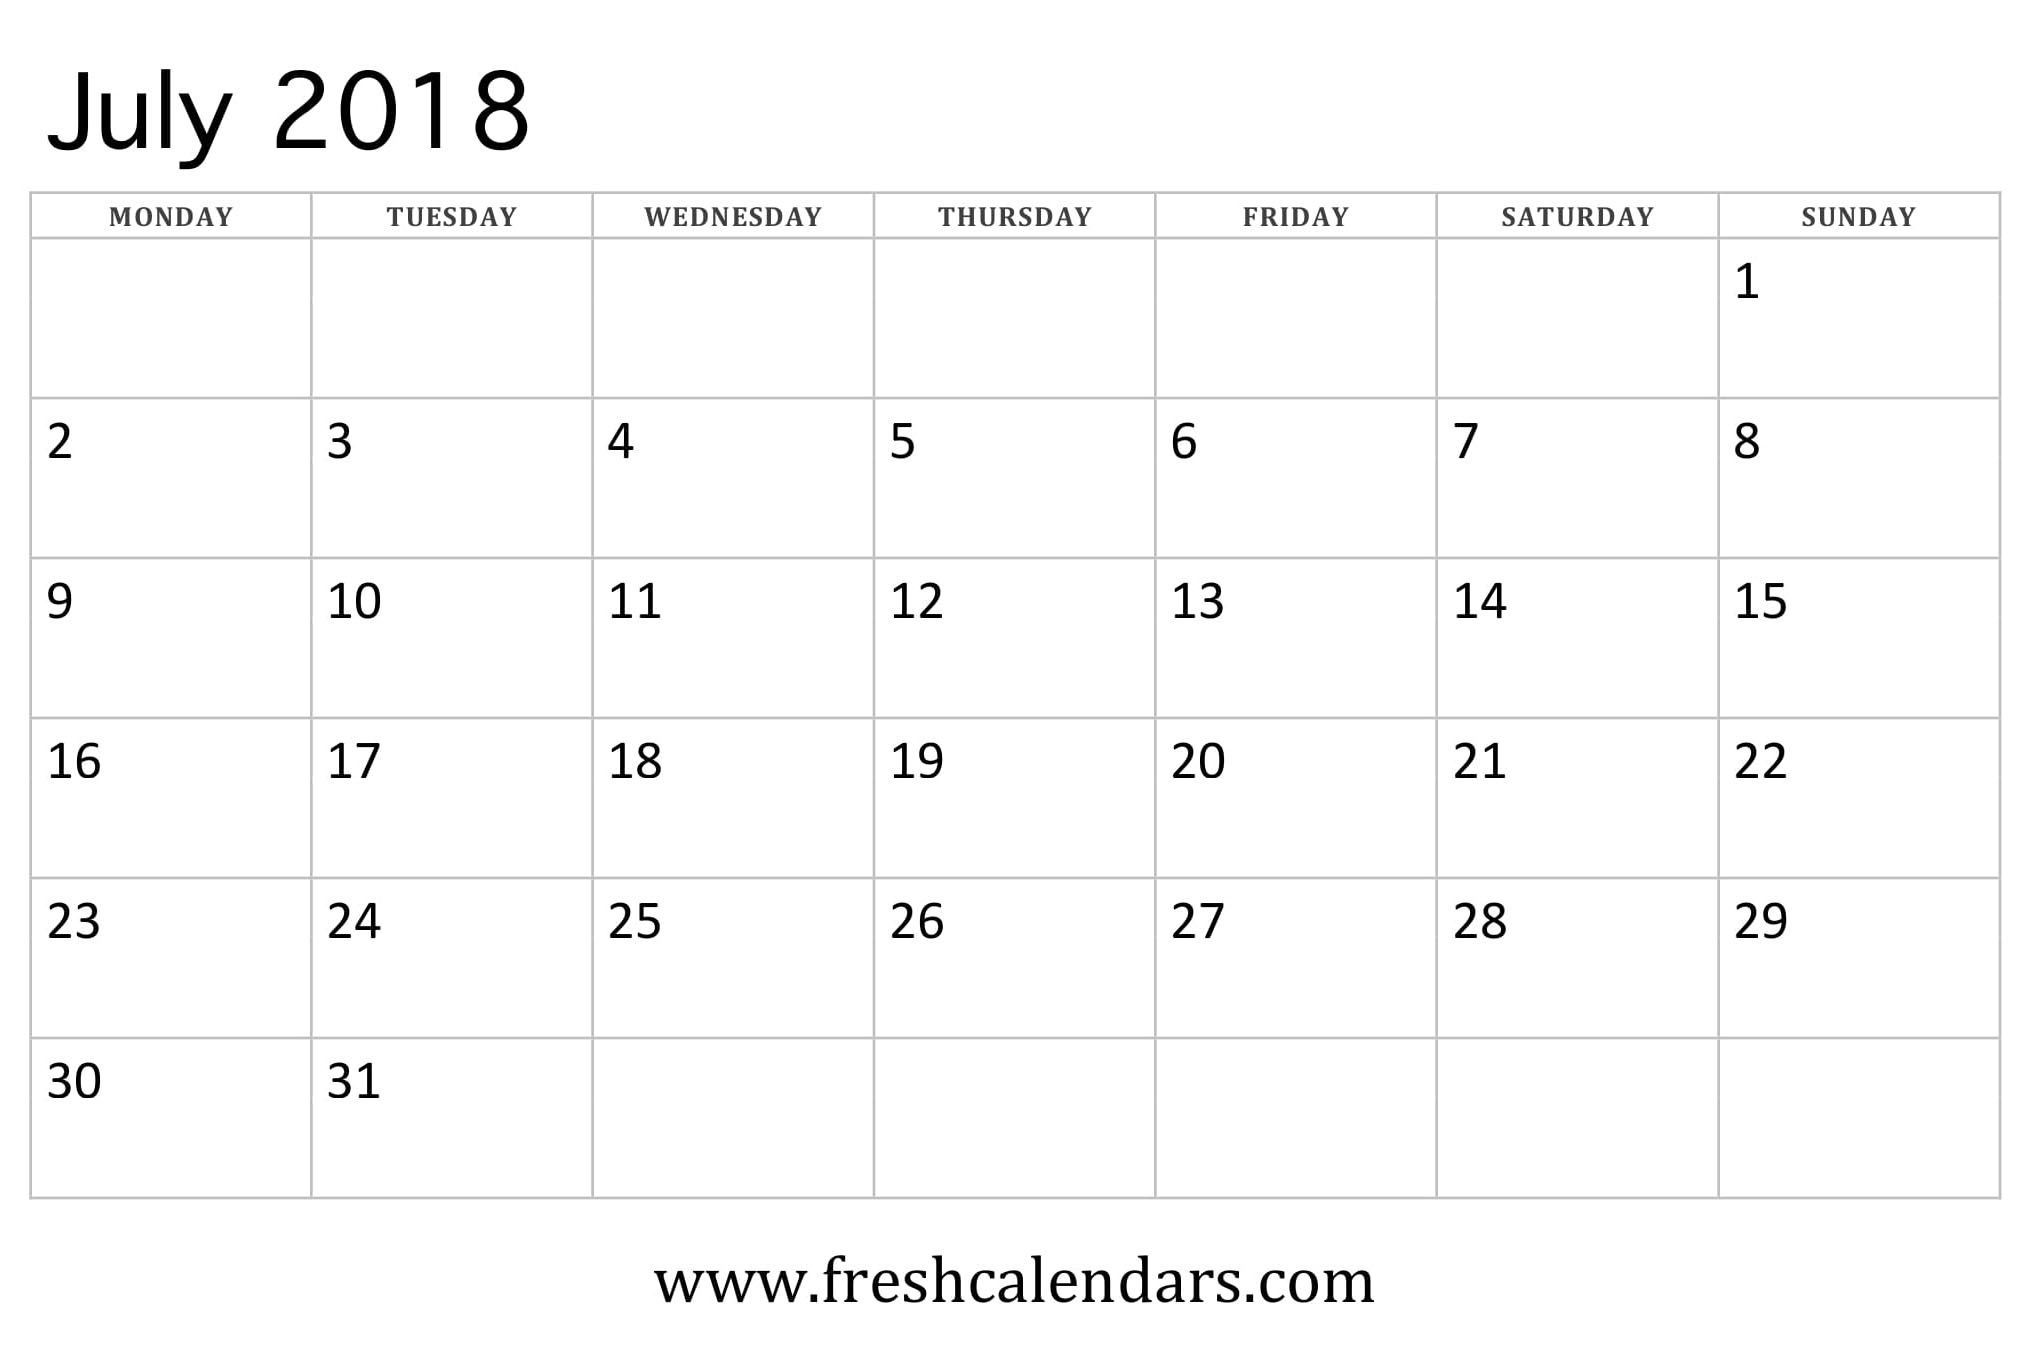 July 2018 Calendar (week starts on monday)